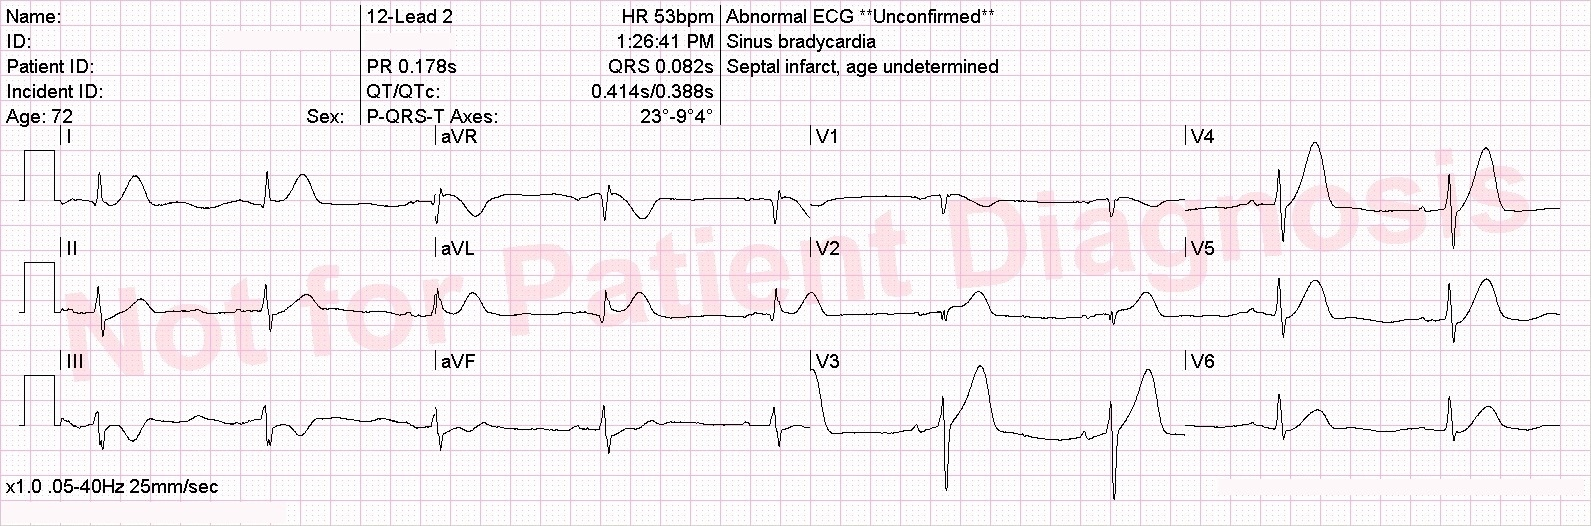 hyperacute LAD occlusion with reciprocal changes